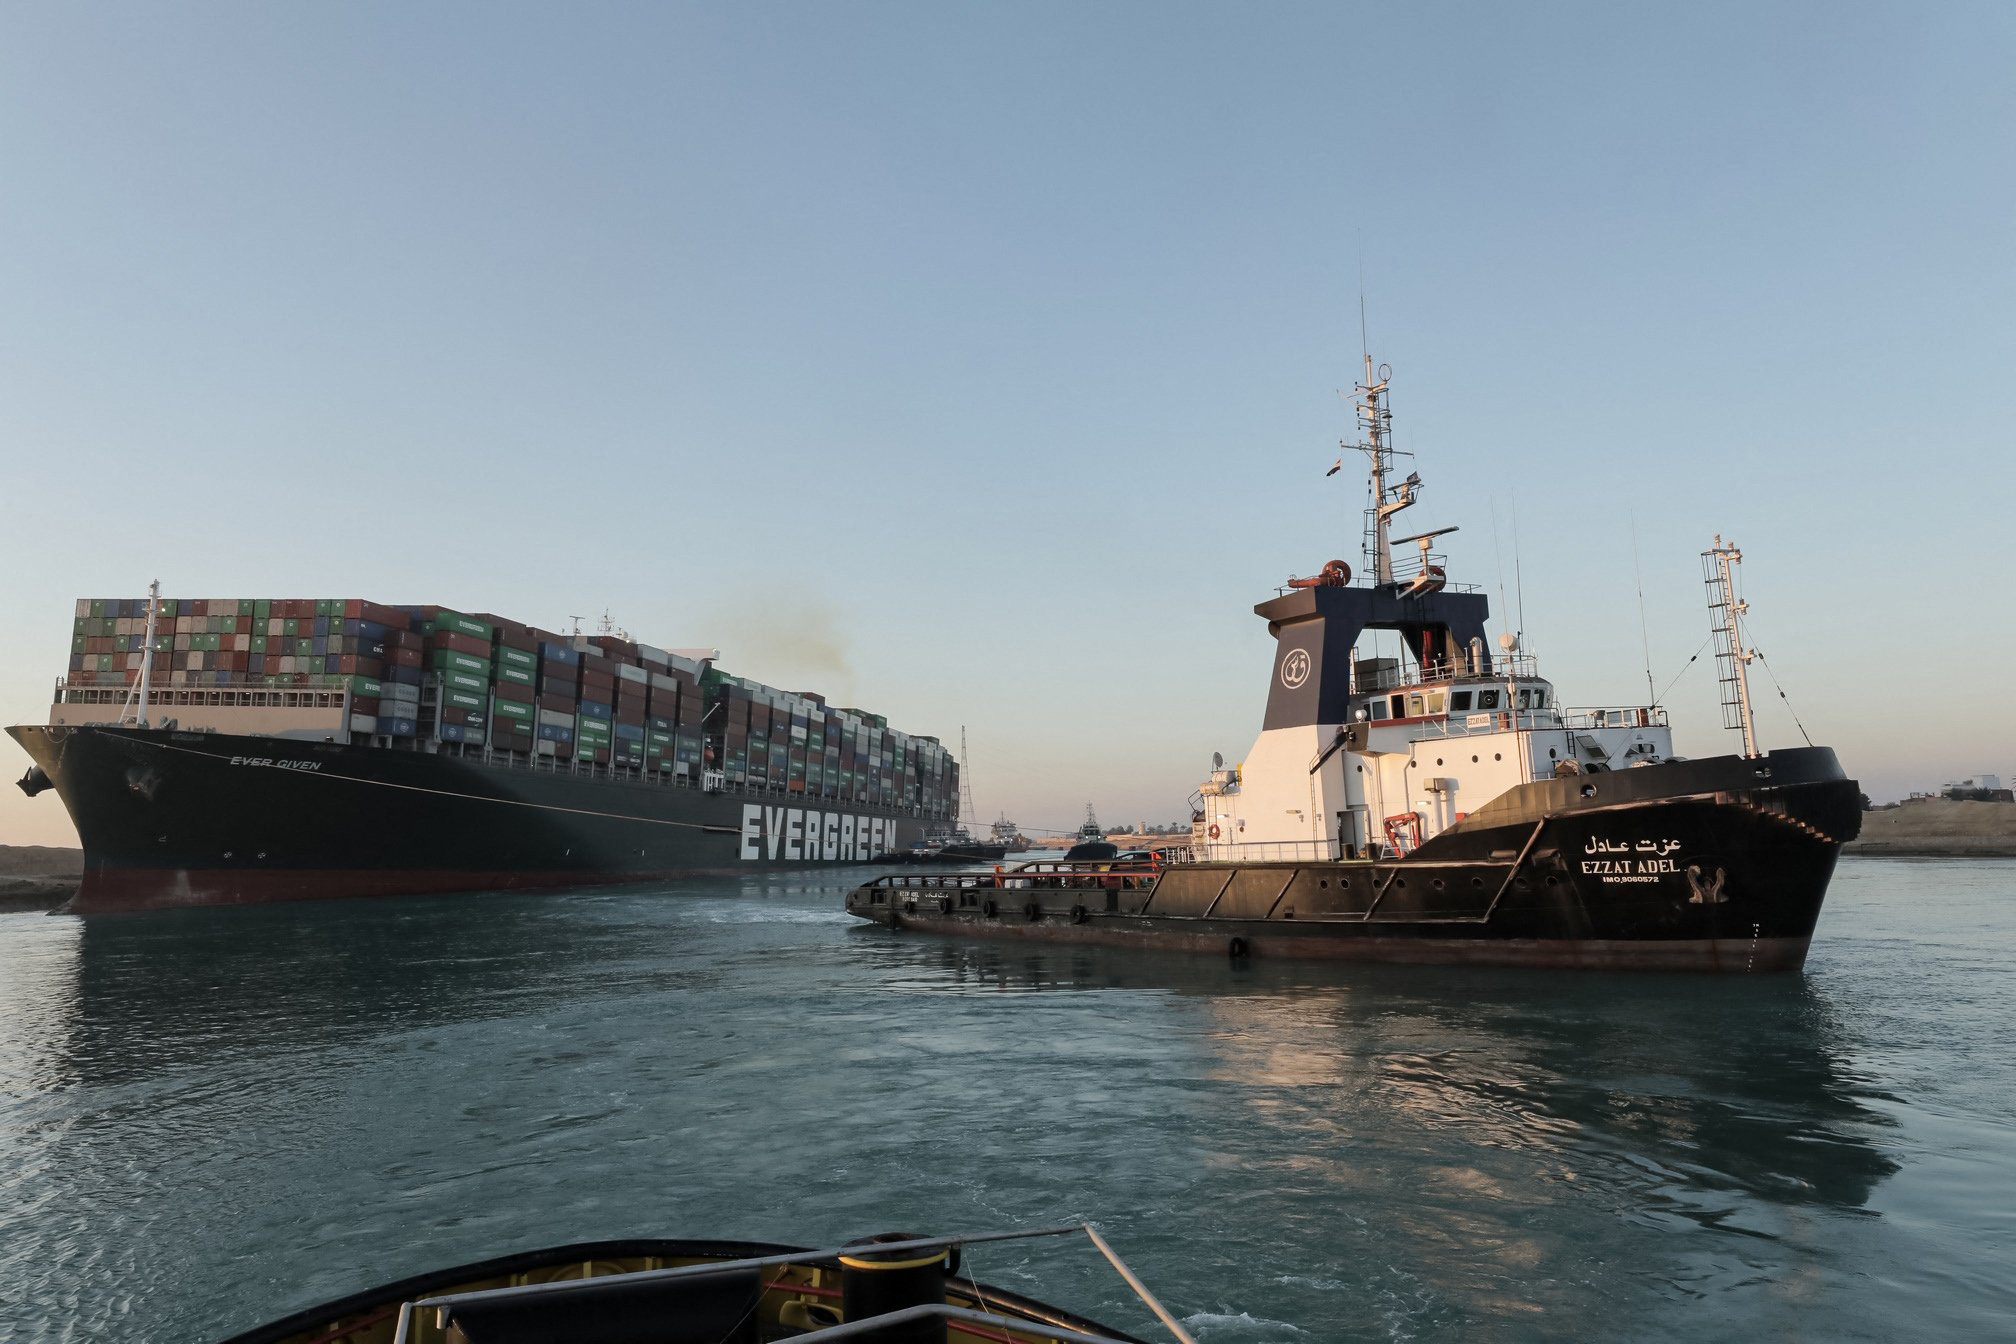 A handout picture released by the Suez Canal Authority on March 29, 2021, shows tugboats pulling the Panama-flagged MV 'Ever Given' container ship lodged sideways impeding traffic across Egypt's Suez Canal waterway.